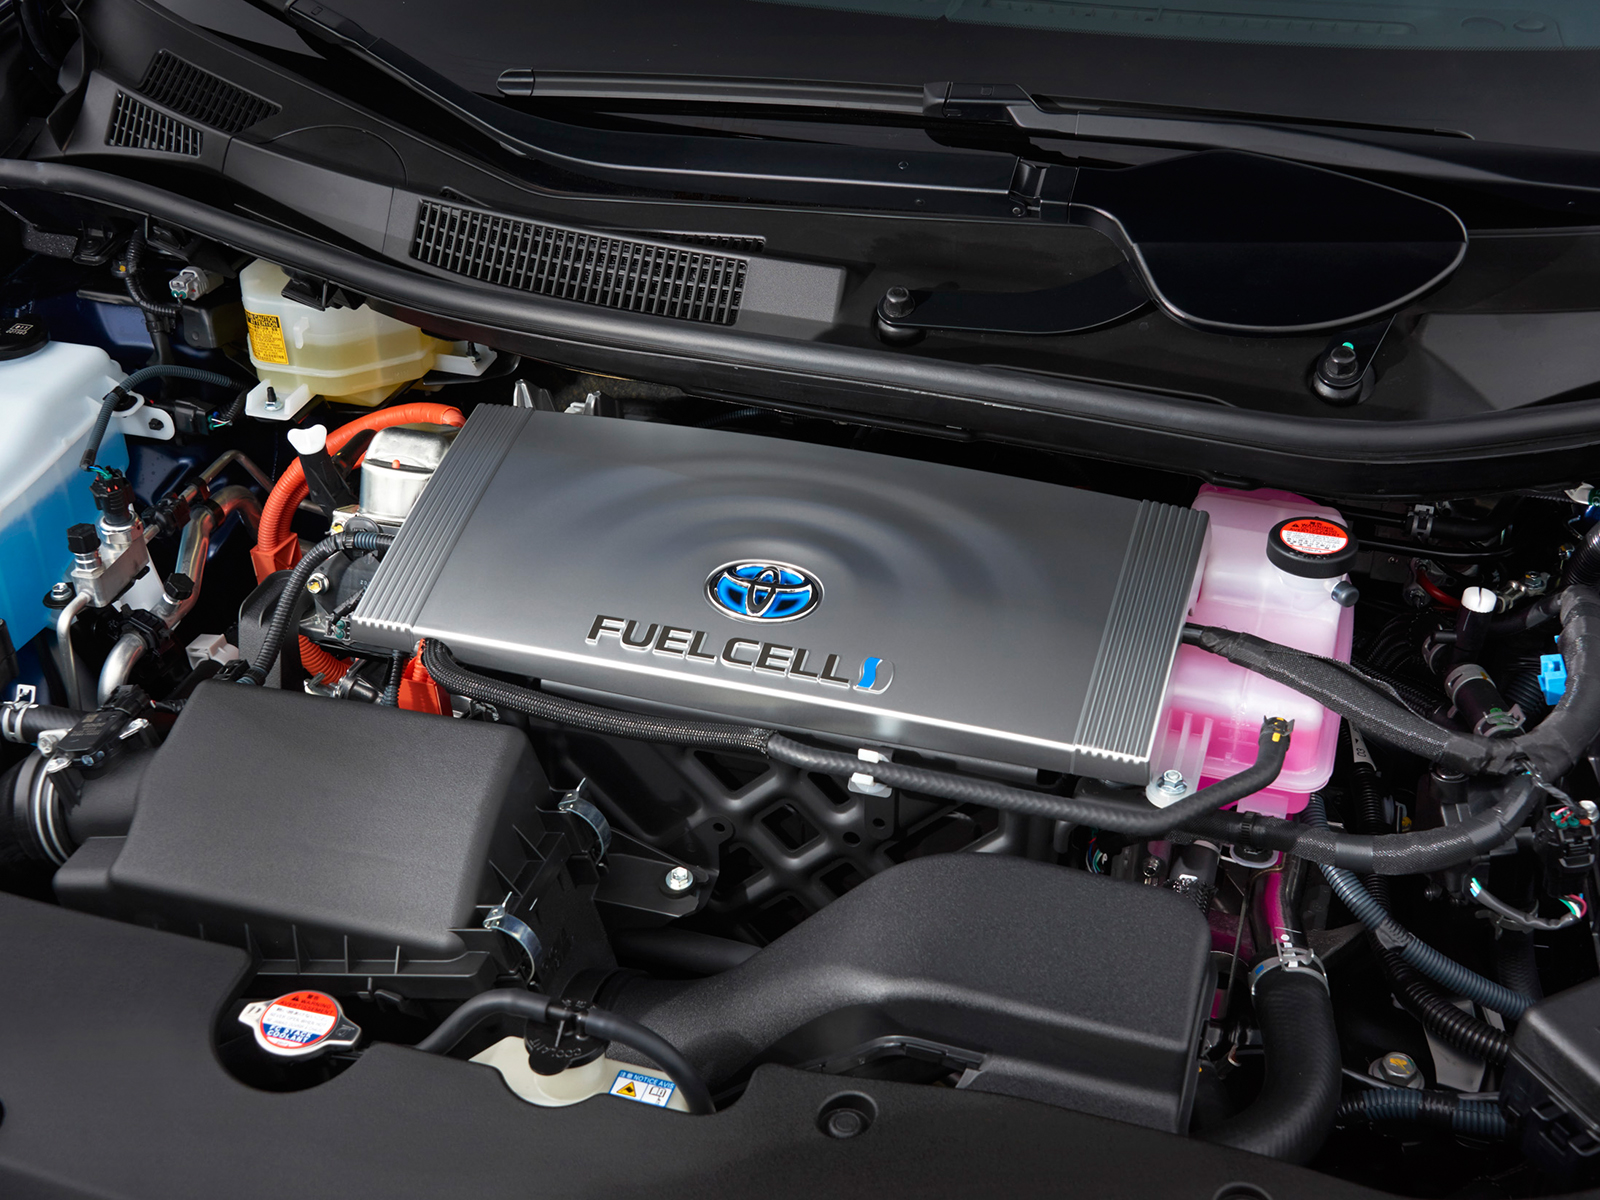 Fuel Cell Vehicle Toyota Europe Further Hydrogen Oxygen On Car Engine Diagram And React In The Stack Producing Electricity To Power Wheels